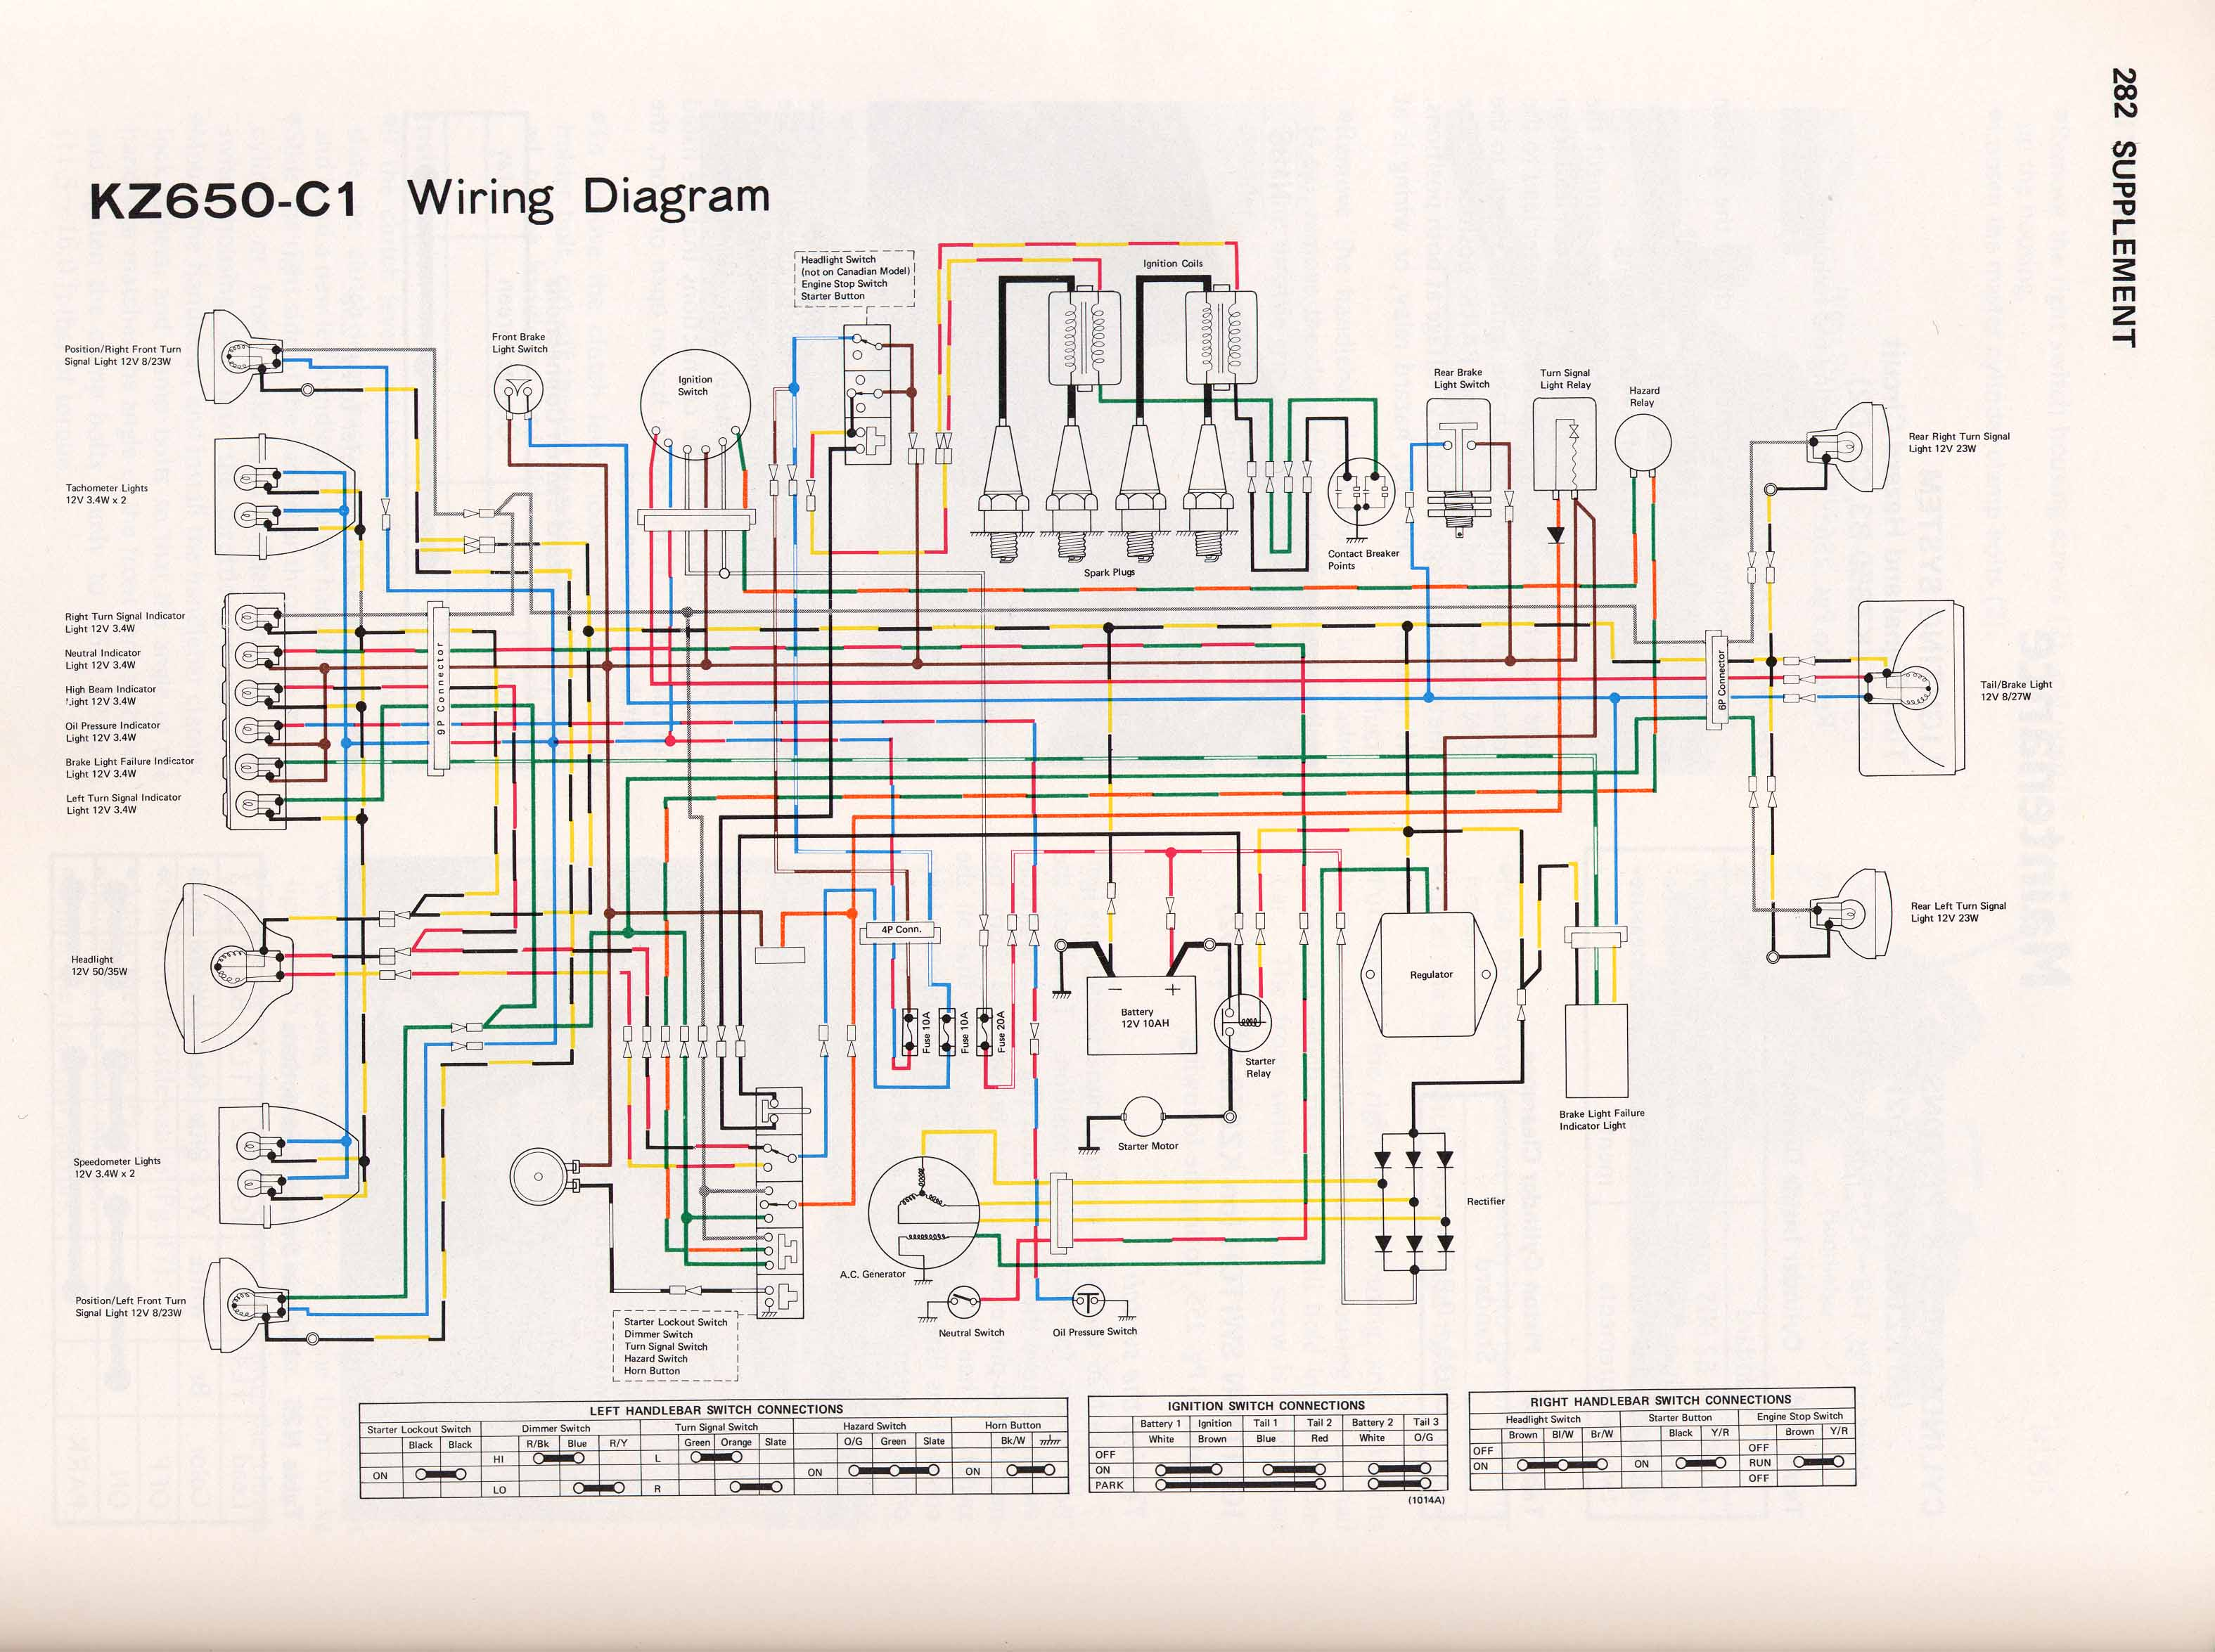 KZ650 C1 kz650 info wiring diagrams 1978 kawasaki kz650 wiring harness at alyssarenee.co